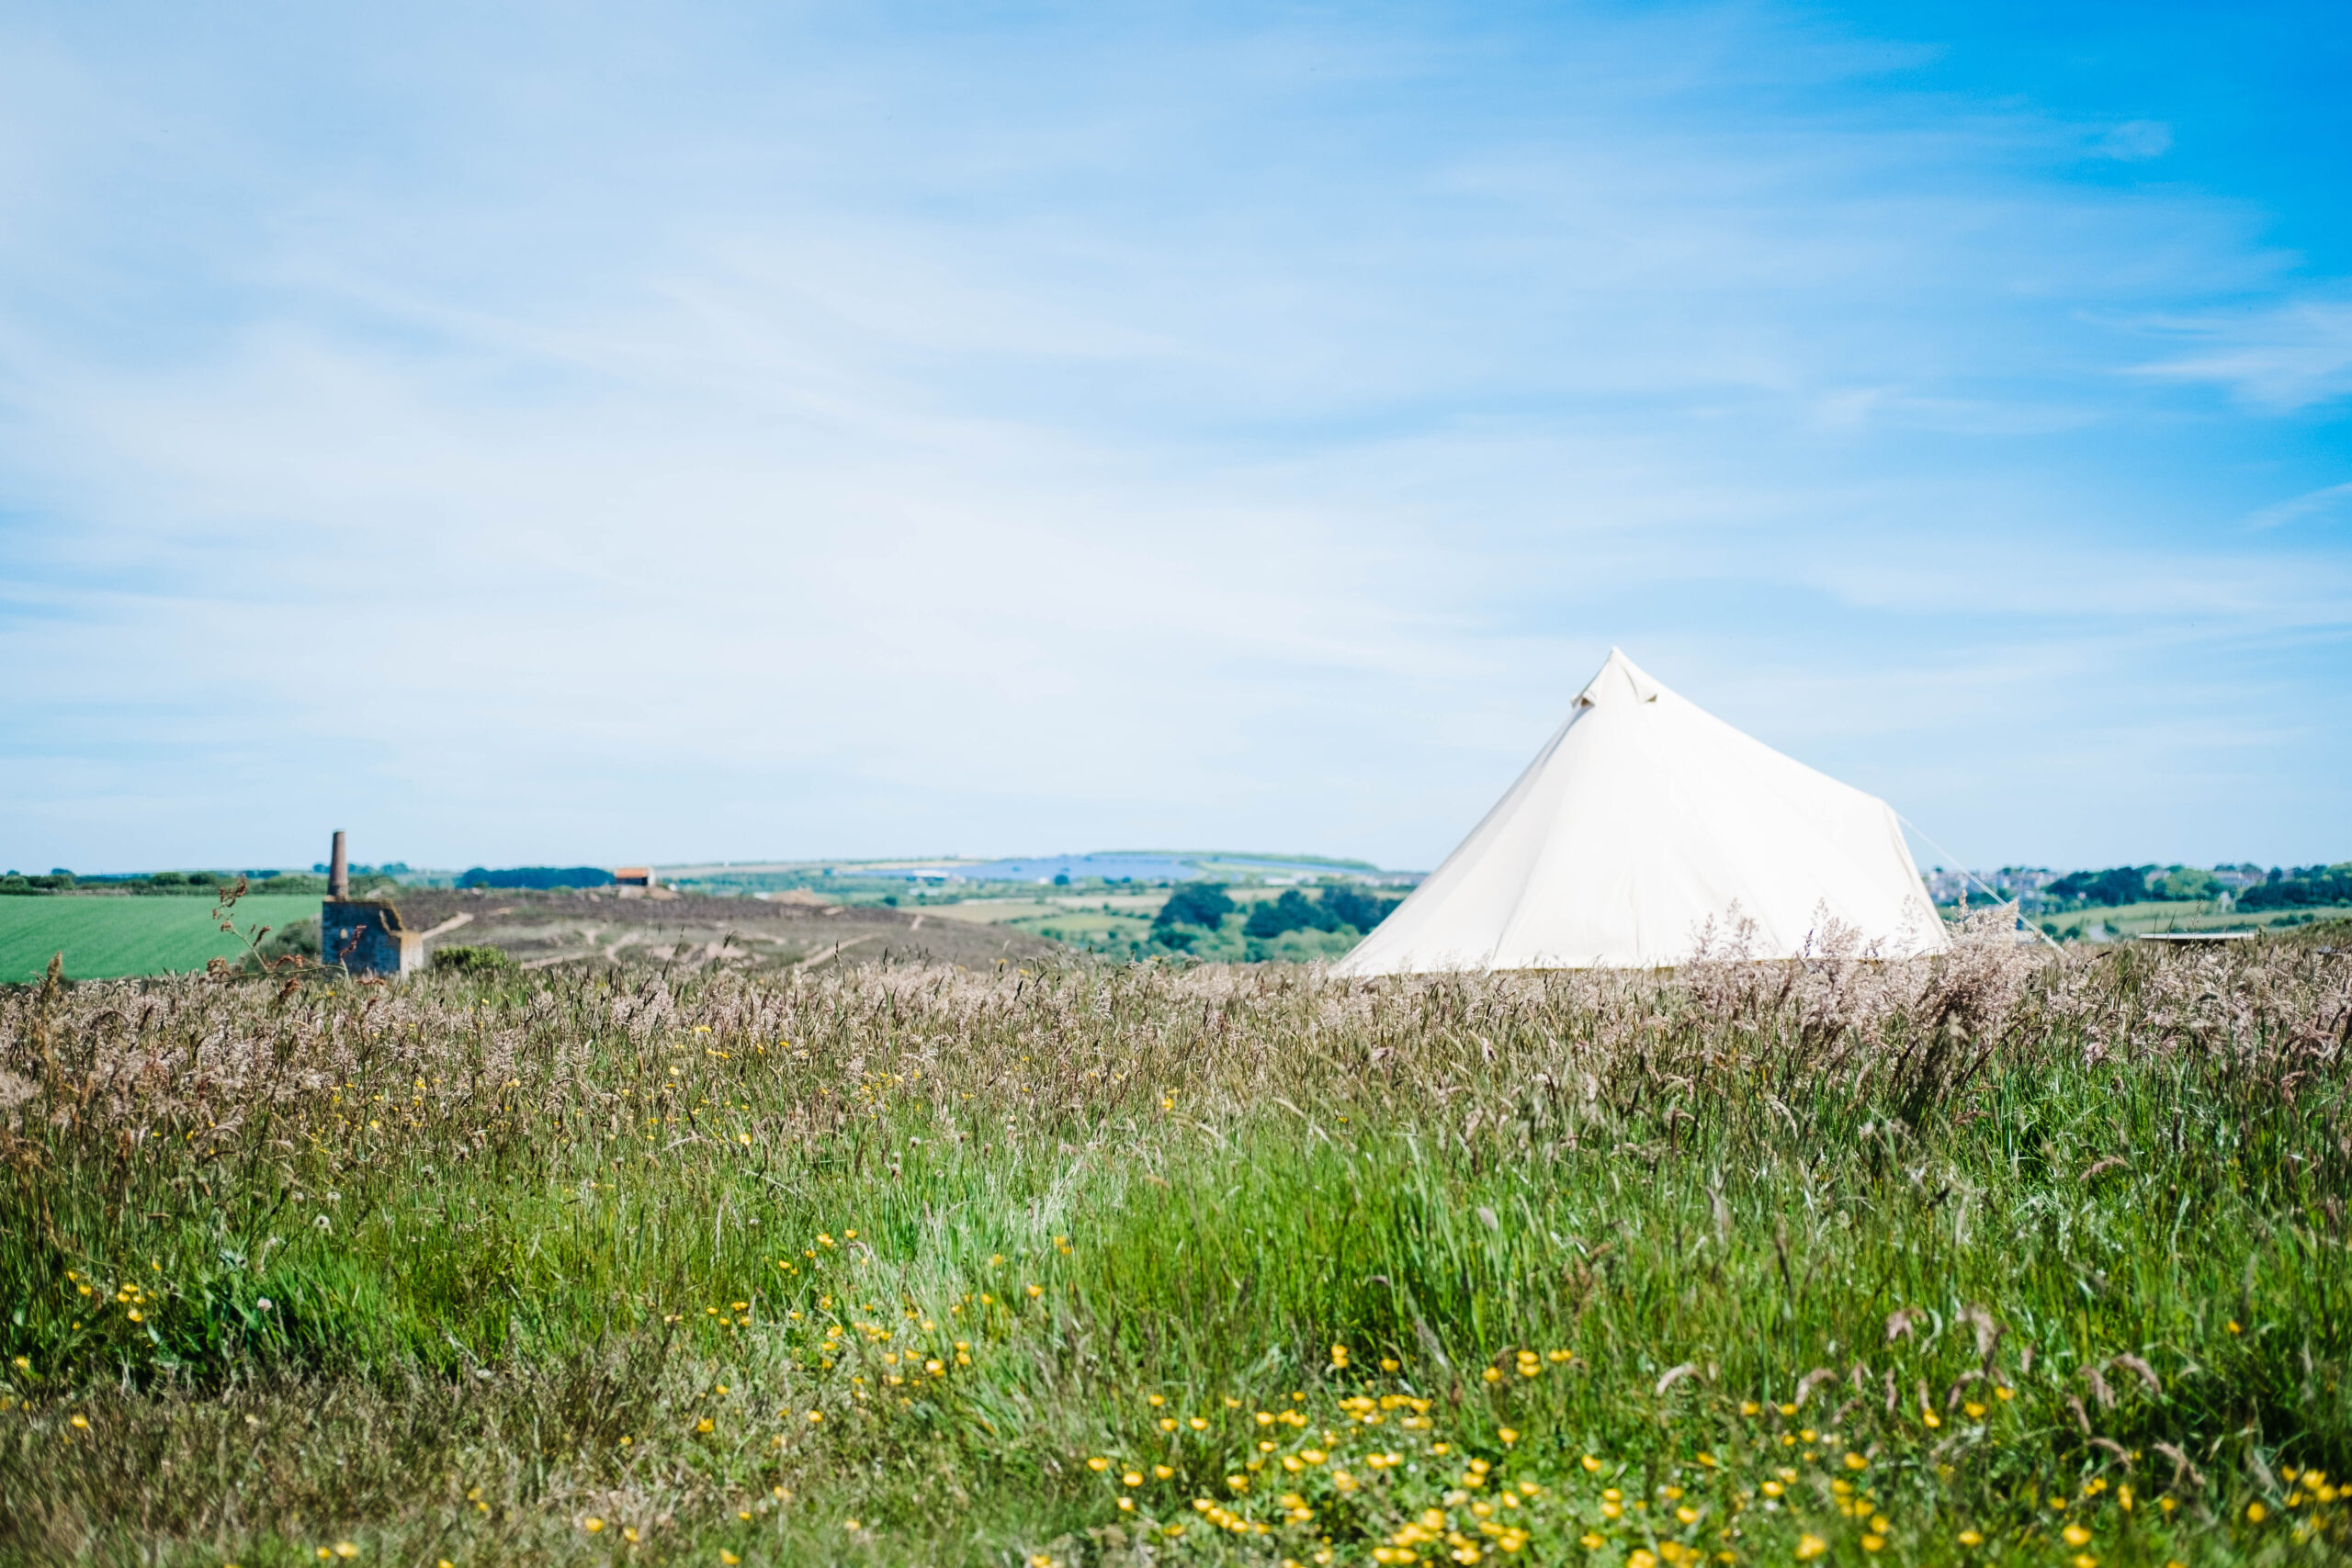 Camping and glamping in Porthtowan Cornwall